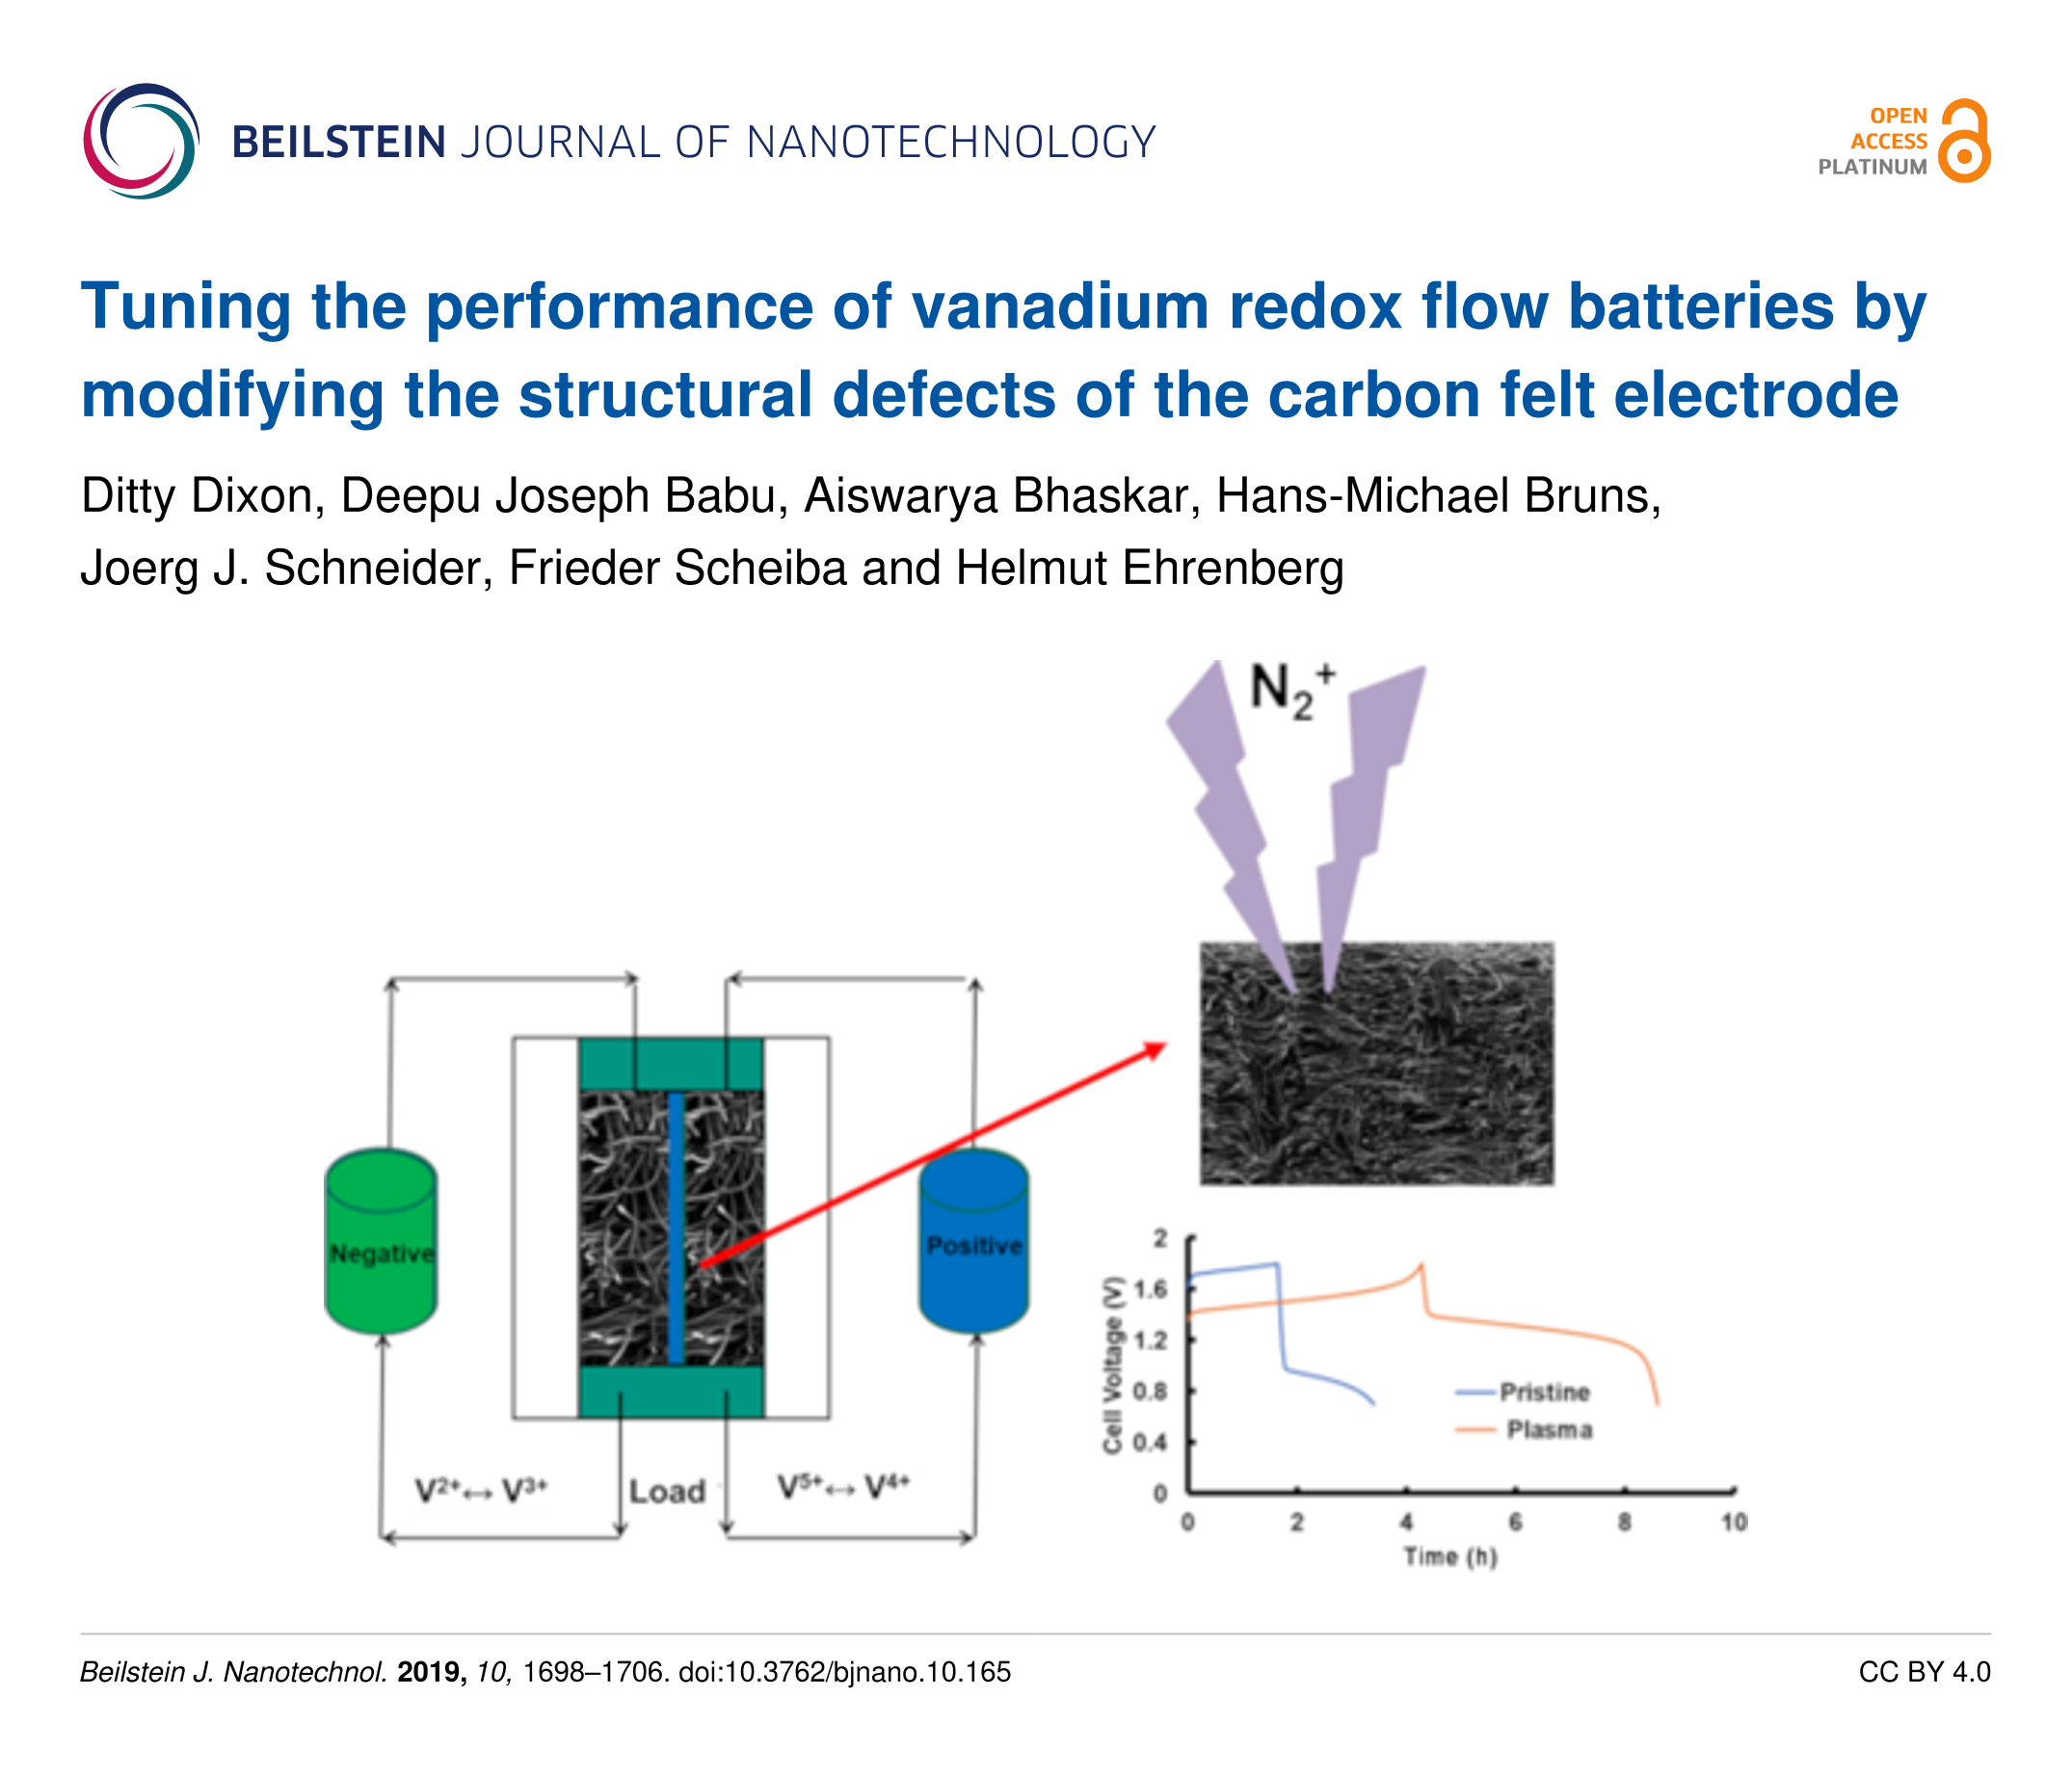 Tuning the performance of vanadium redox flow batteries by